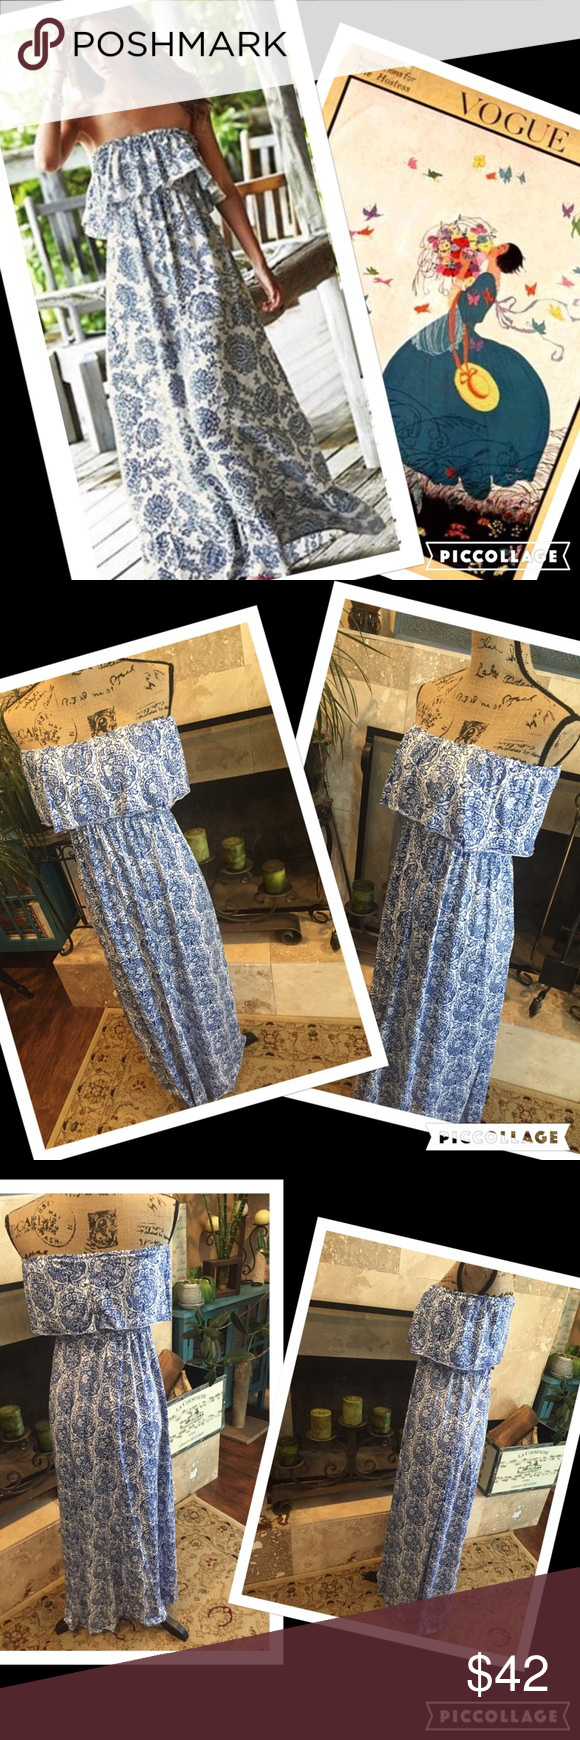 """Summer boho maxi dress Summer Women BOHO Bandeau, Cocktail, Evening, Party, Long Maxi, Beach Dress, Sundress. I'm 5'6"""" and comes slightly above my ankles.  Size small to medium for more flowing effect. A size large can do, will be a tad more fitted. Polyester blend. It has a lot of stretch to it. Slightly brighter on the blue than pics allow. This is not Victoria's Secret. It has similar look, pic is to give idea. Boutique Dresses Strapless"""